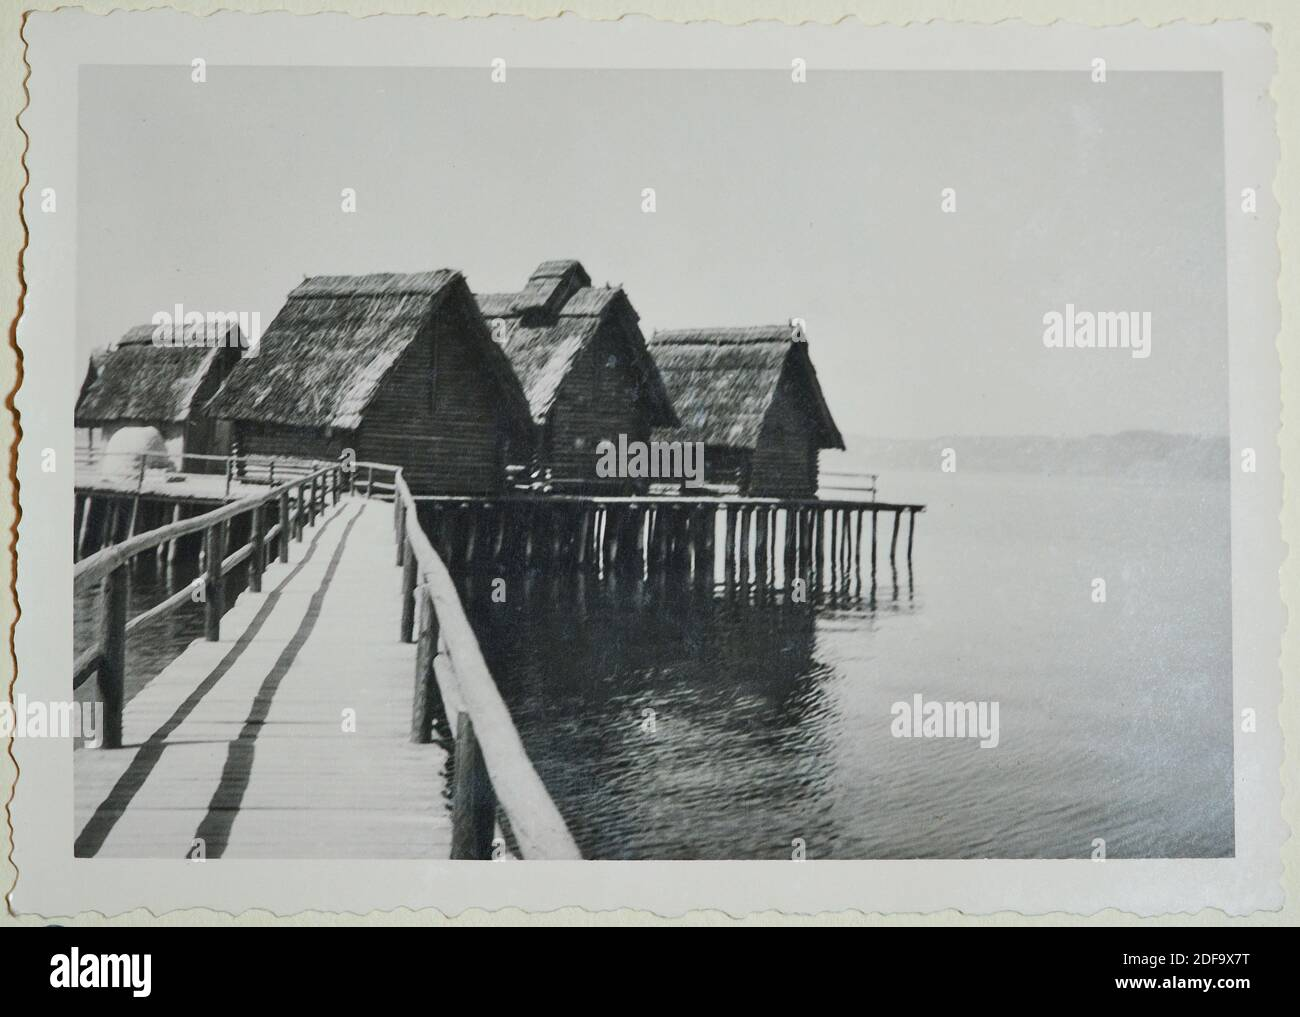 Historical Photo:  Pile dwellings on lake constance, June 1958 in Uhldingen, Germany. Reproduction in Marktoberdorf, Germany, October 26, 2020.  © Peter Schatz / Alamy Stock Photos Stock Photo